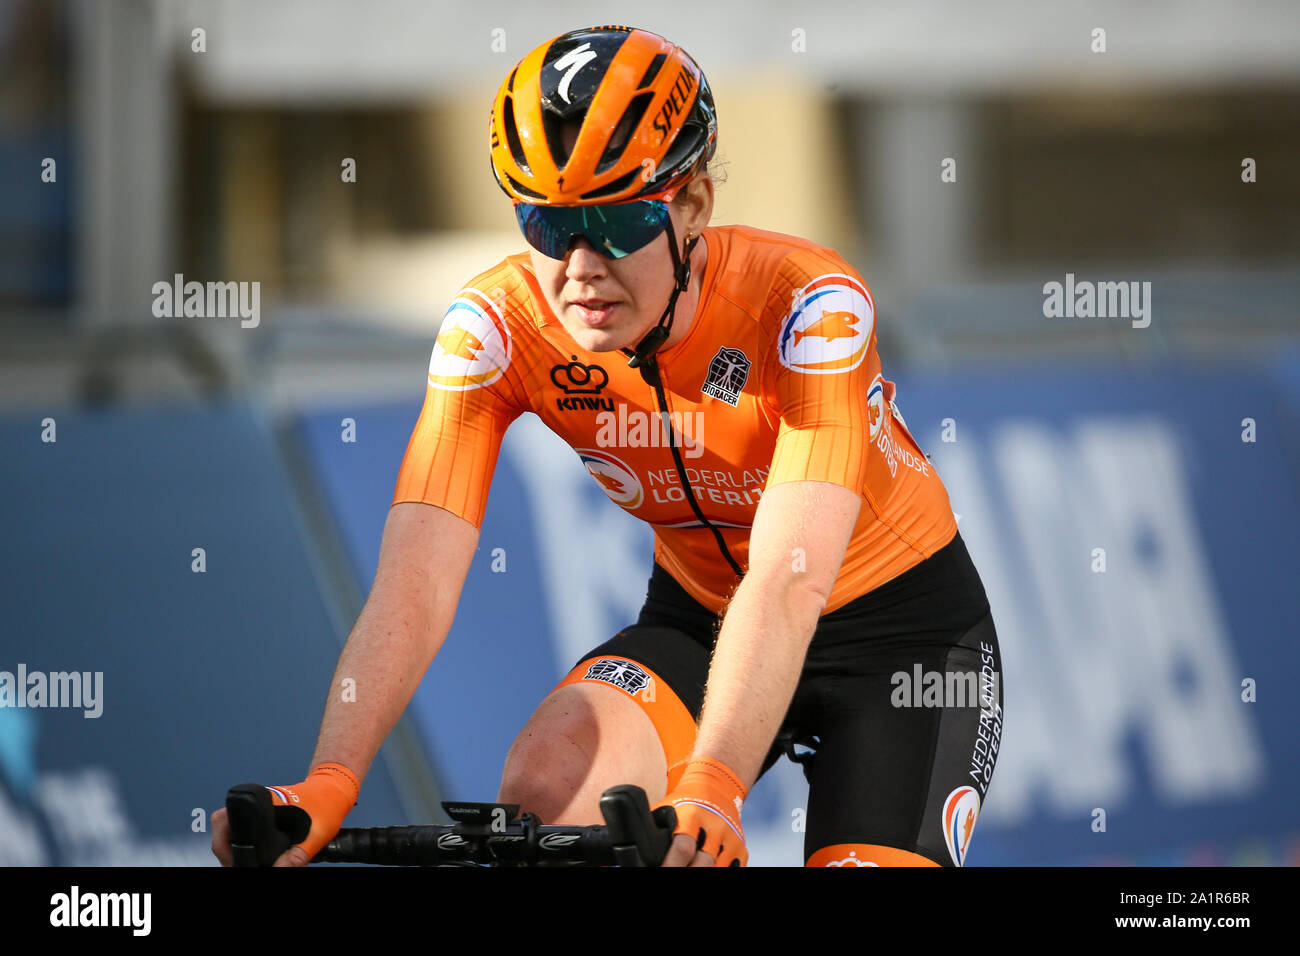 Harrogate, UK. 28th Sep, 2019. Anna Van Der Breggen of the Netherlands takes Silver in the 2019 UCI Road World Championships Womens Elite Road Race. September 28, 2019 Credit Dan-Cooke/Alamy Live News Stock Photo